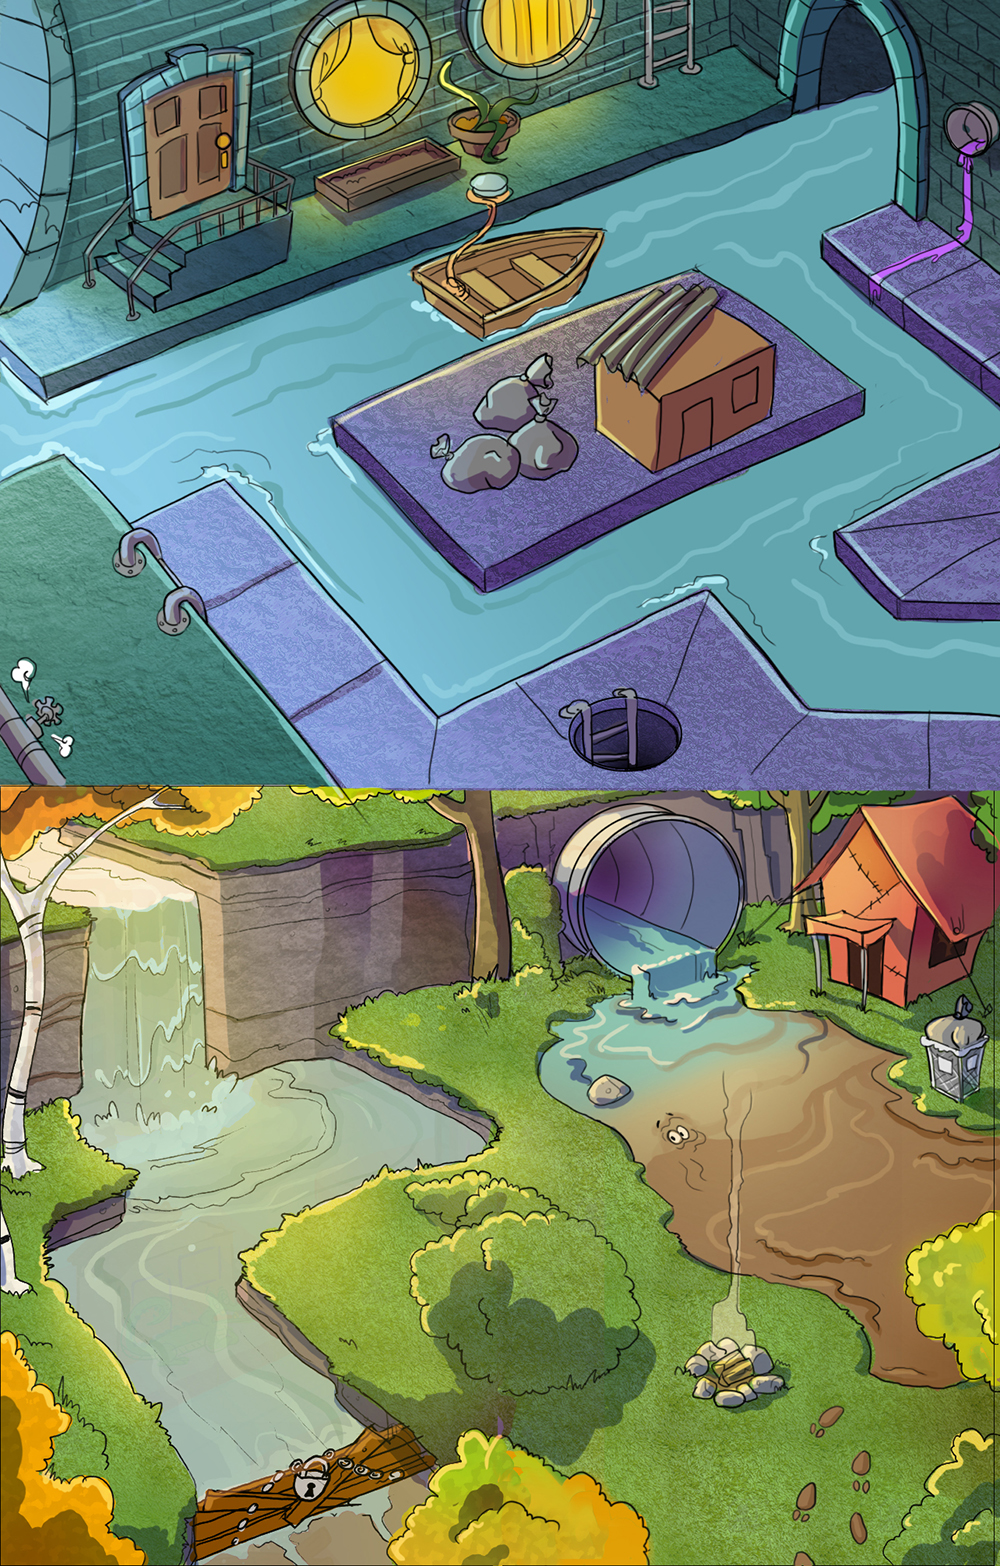 WMW2_MAP_CON_Isometric_HG_2.jpg